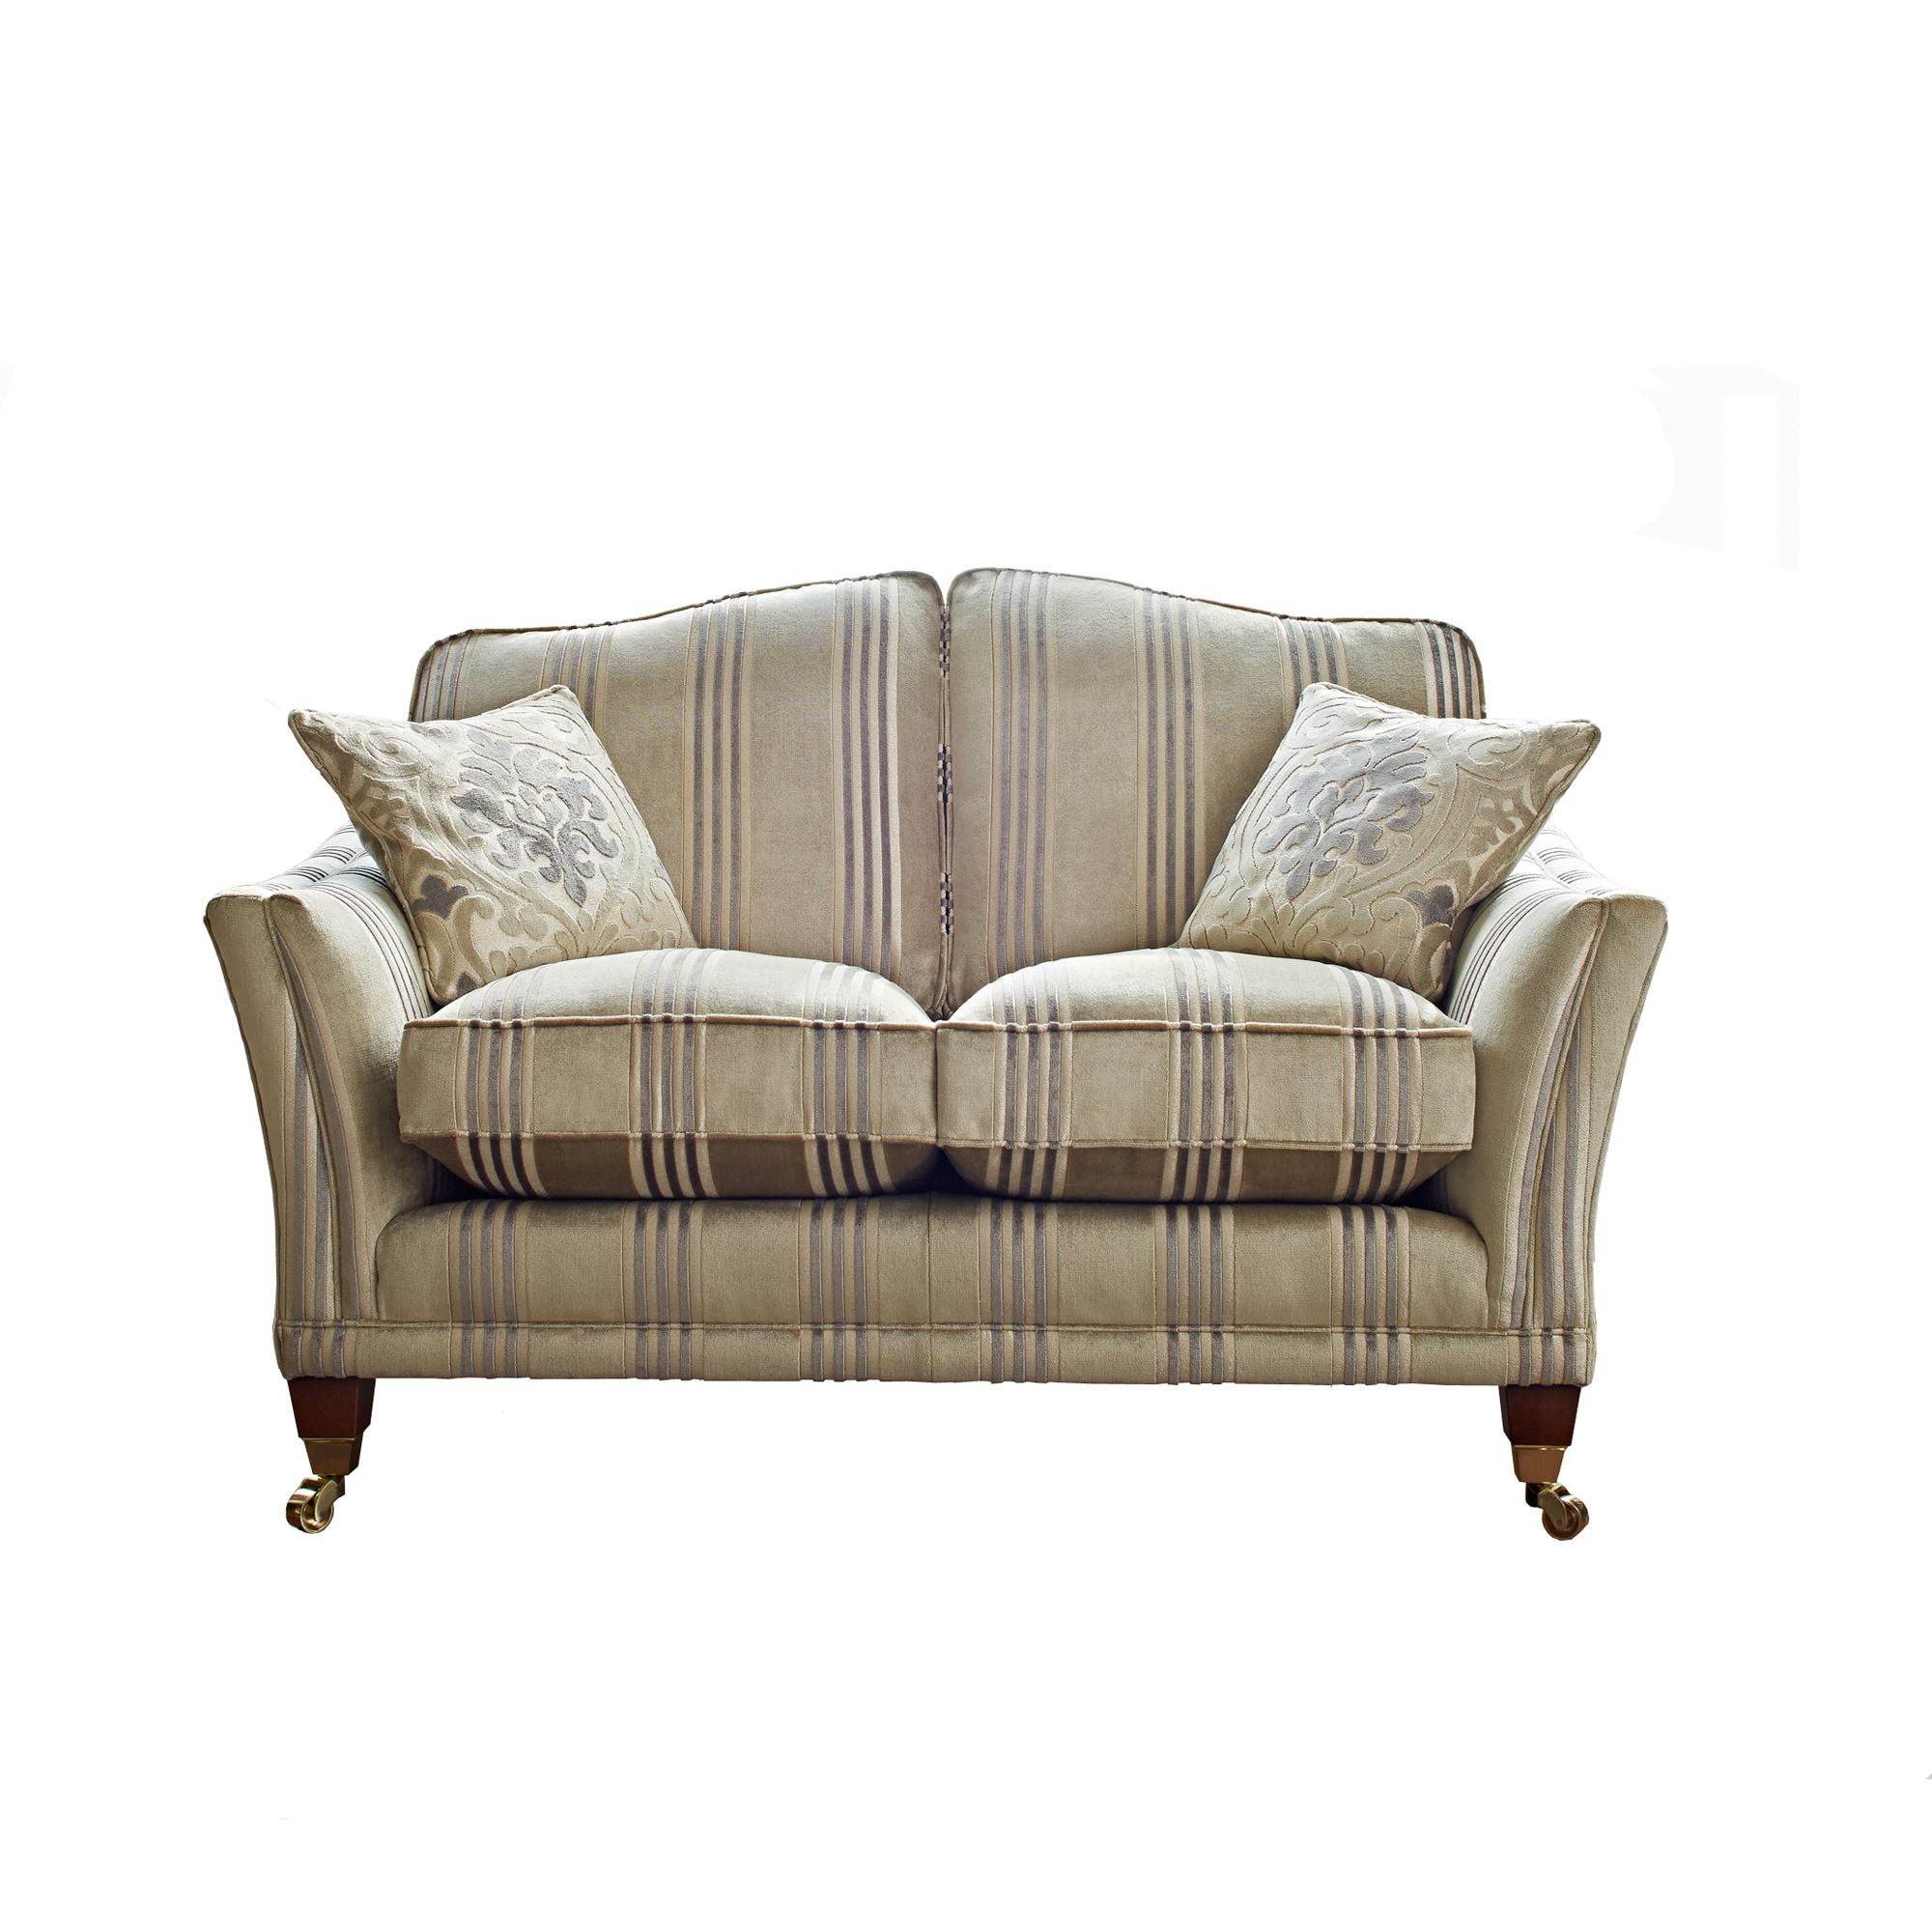 Most Recently Released Parker Knoll Harrow 2 Seater Sofa – Parker Knoll – Cookes Furniture Regarding Parker Sofa Chairs (View 11 of 20)